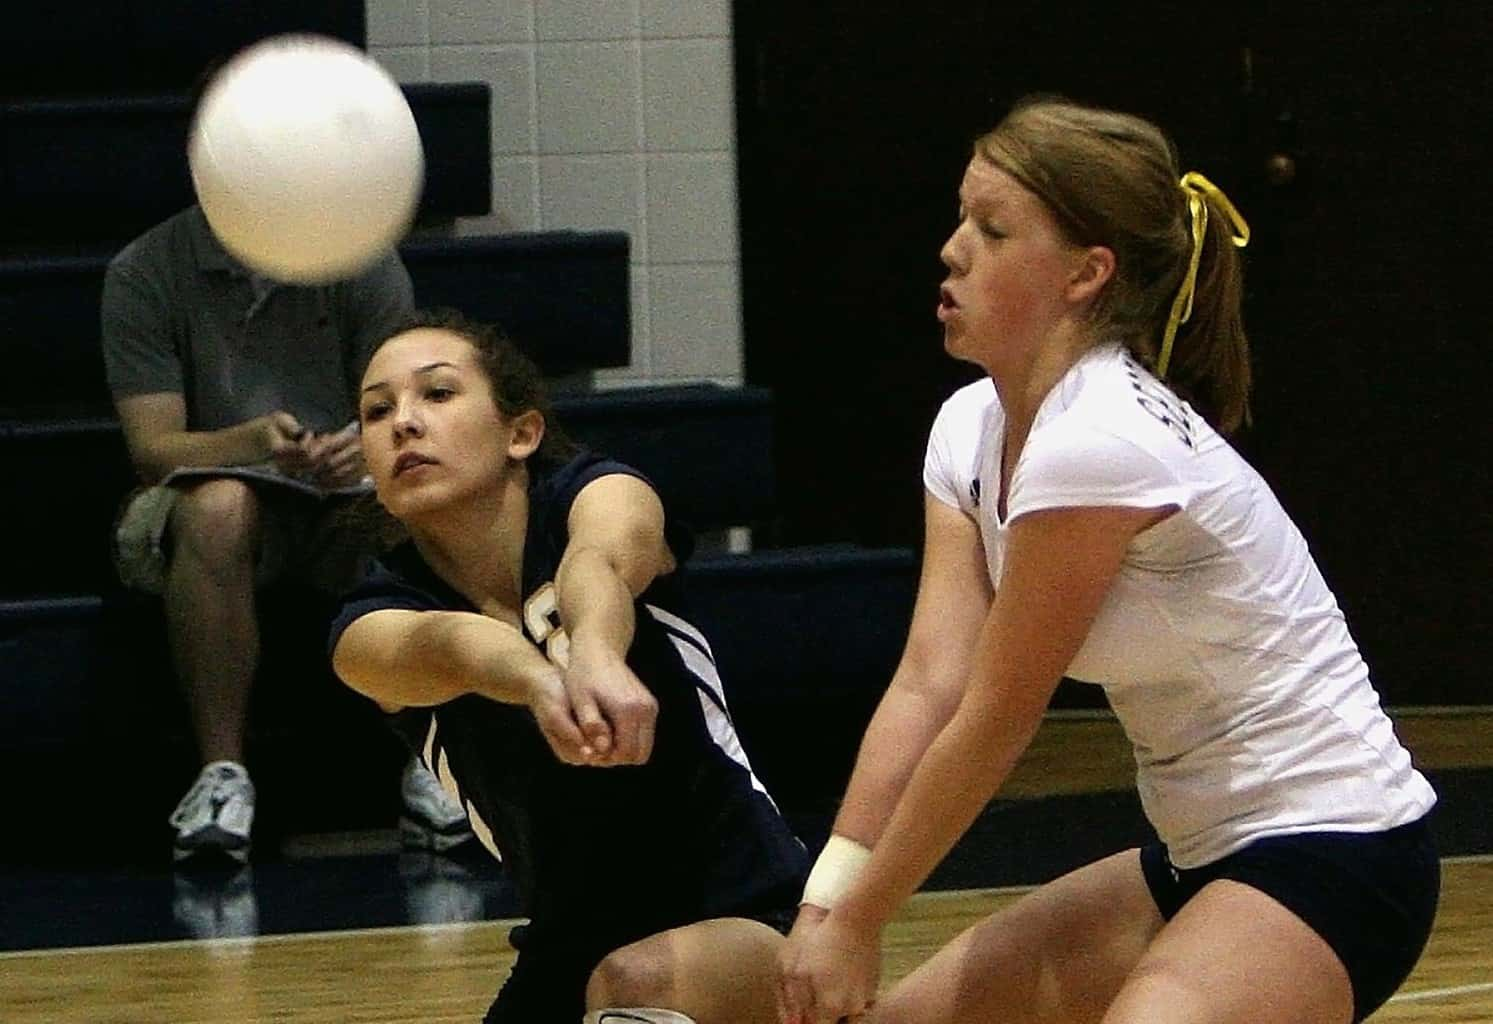 Two volleyball players receiving the ball